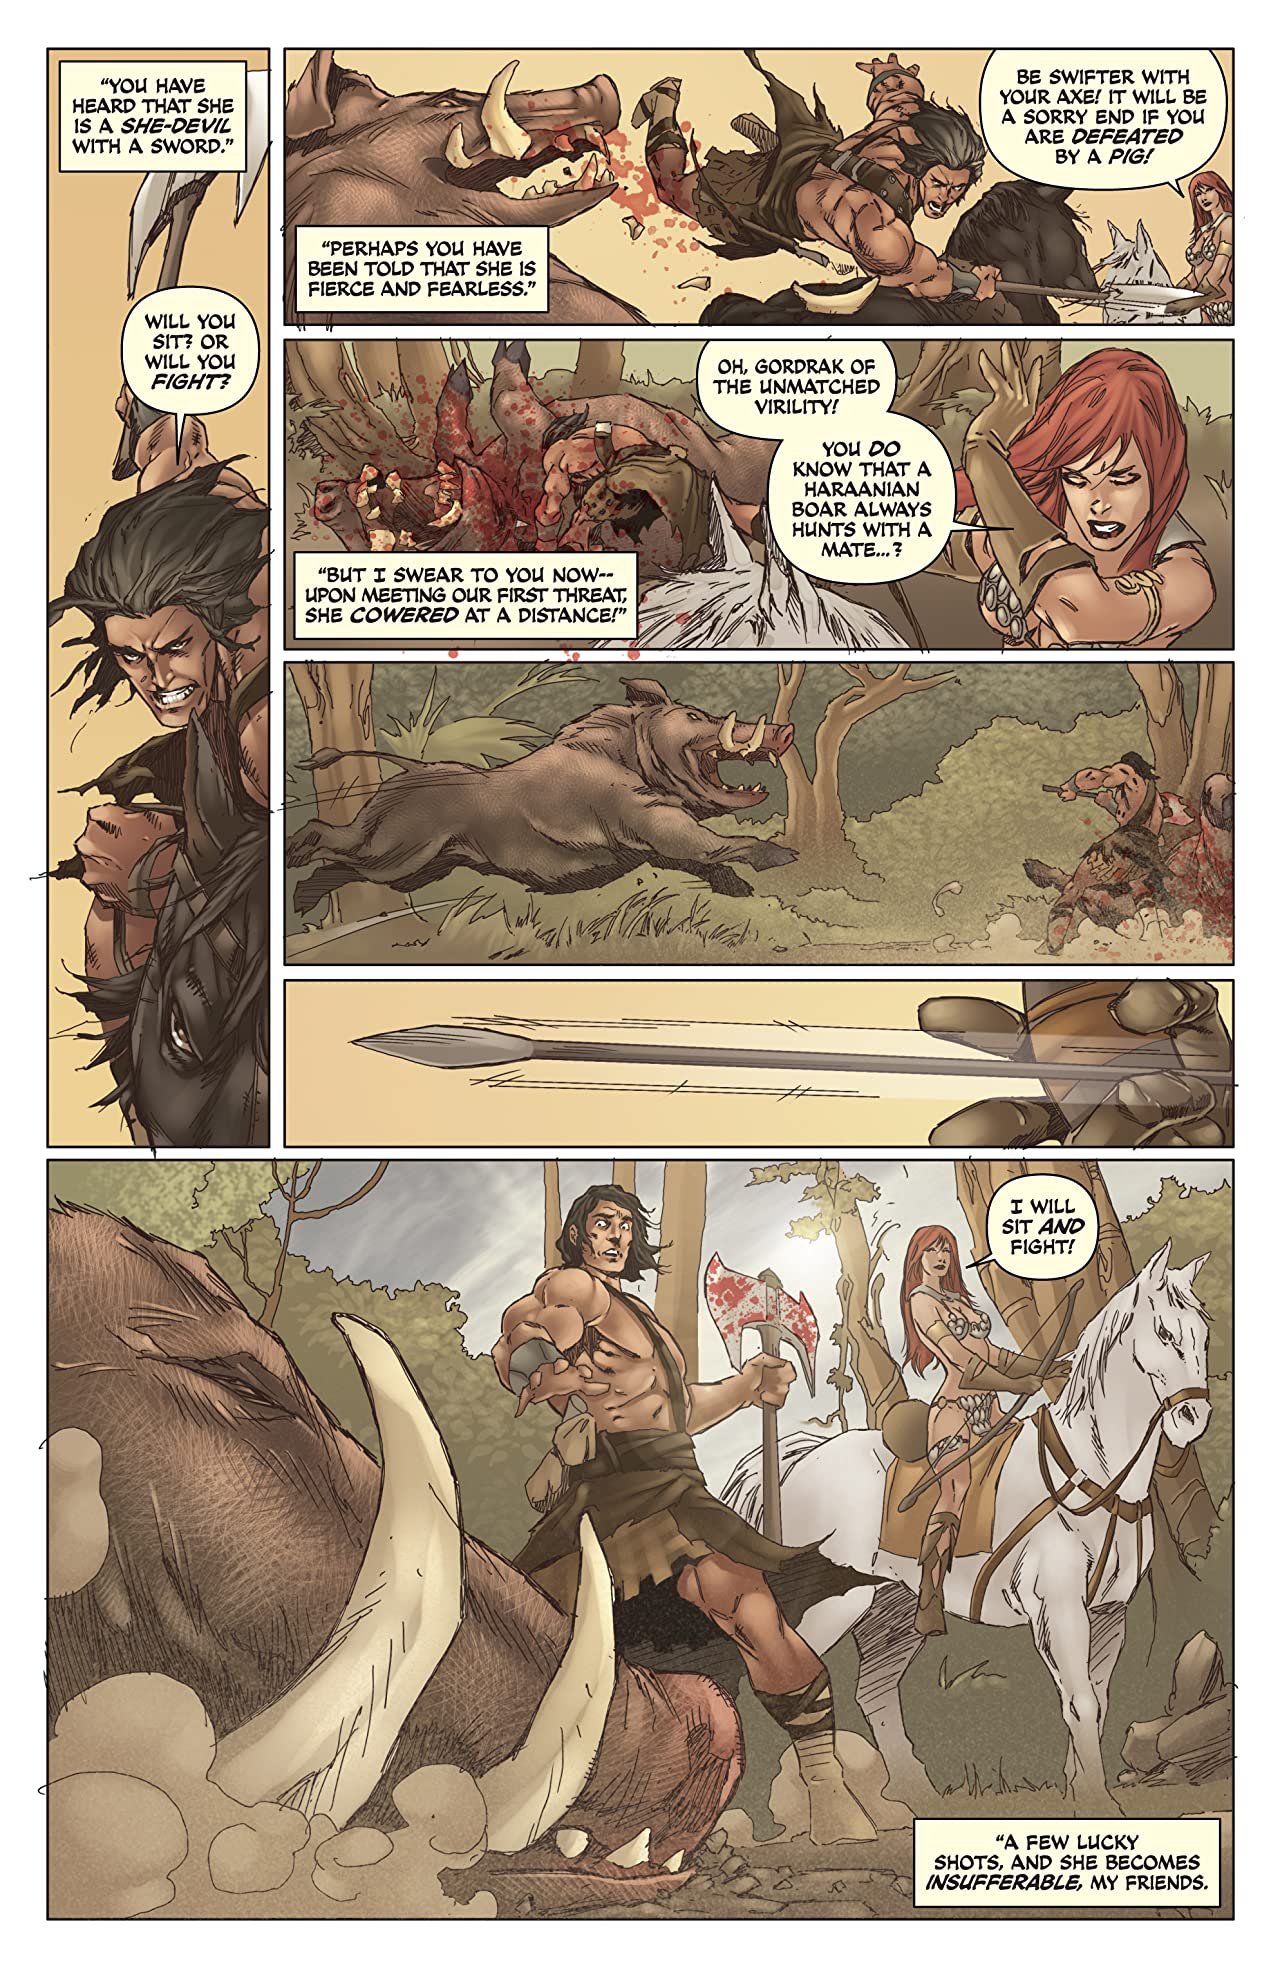 Legends of Red Sonja #2 (of 5): Digital Exclusive Edition